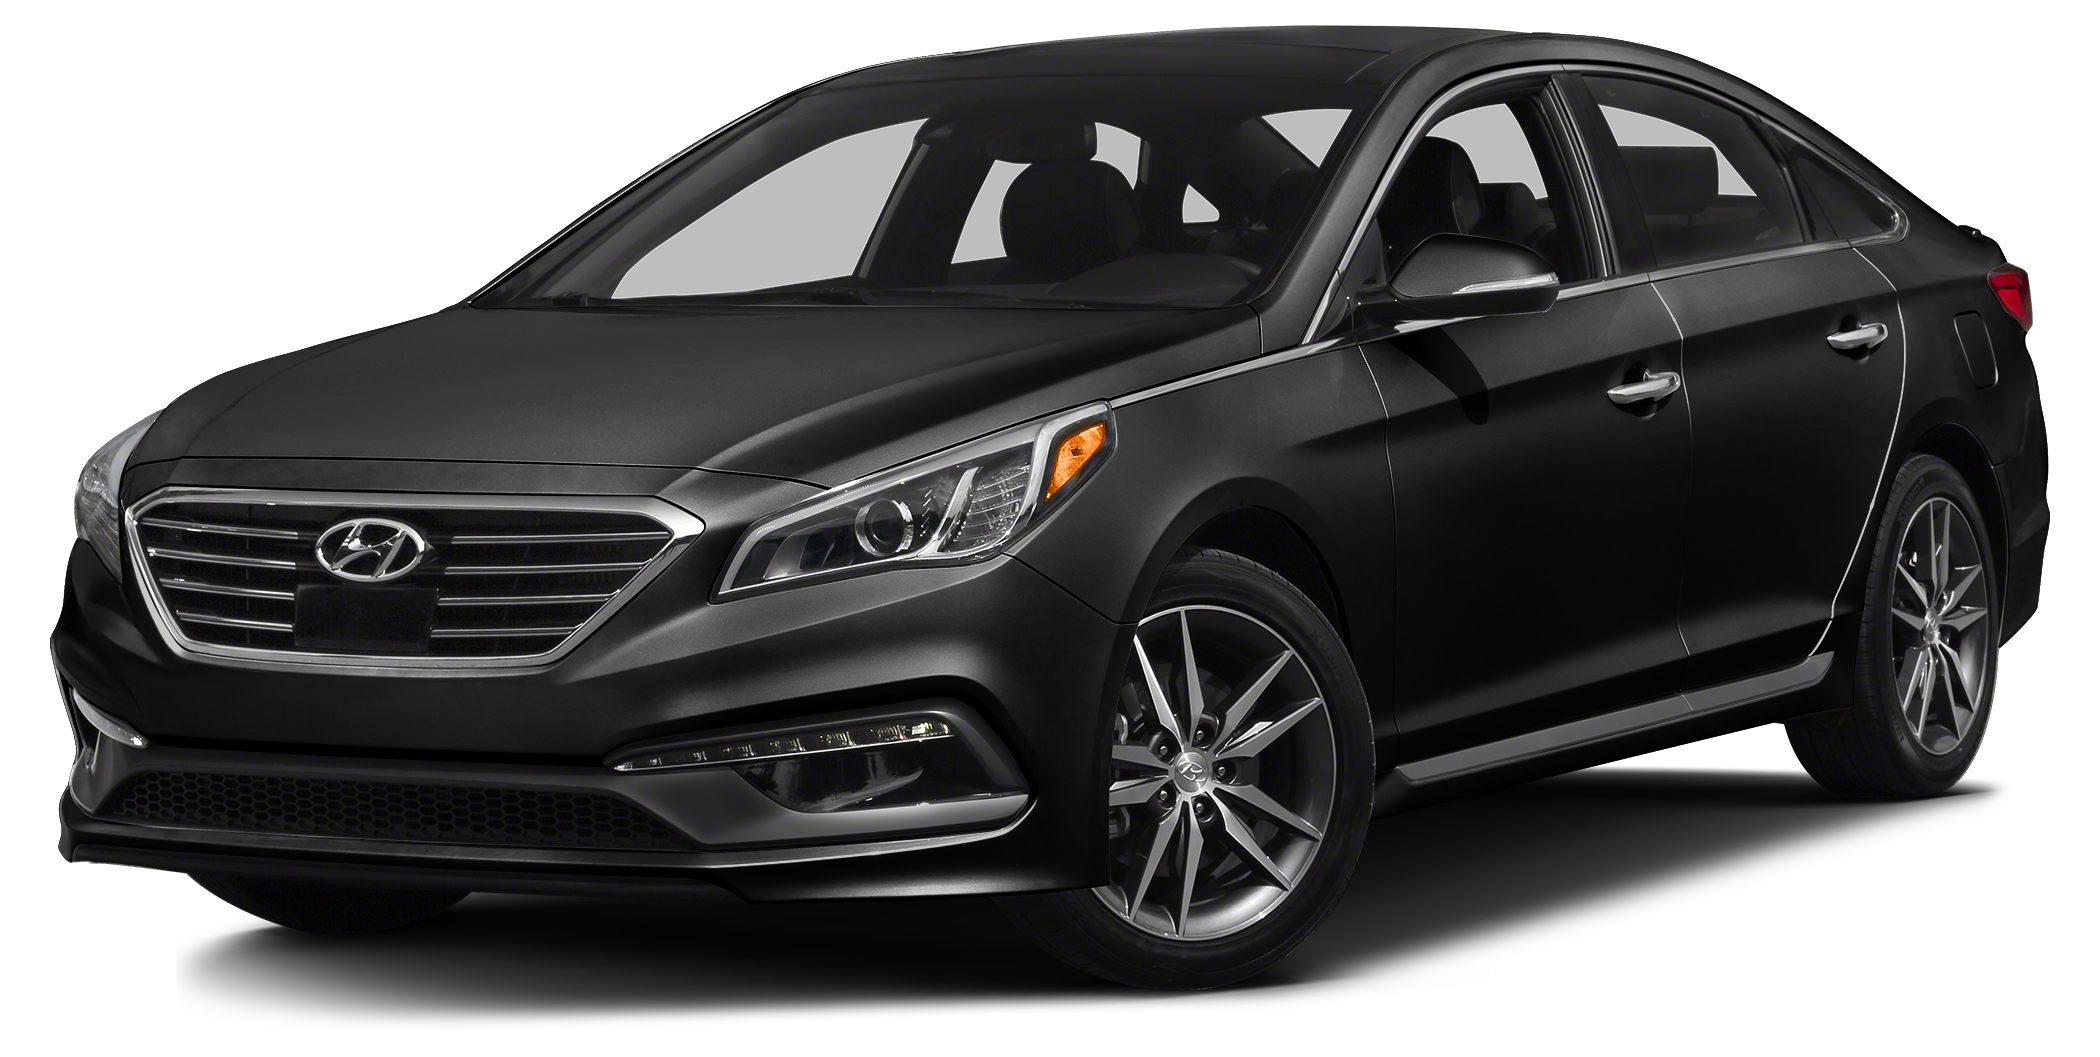 2015 Hyundai Sonata SE Price includes 1500 - Retail Bonus Cash Exp 0430 Miles 10Color Ven